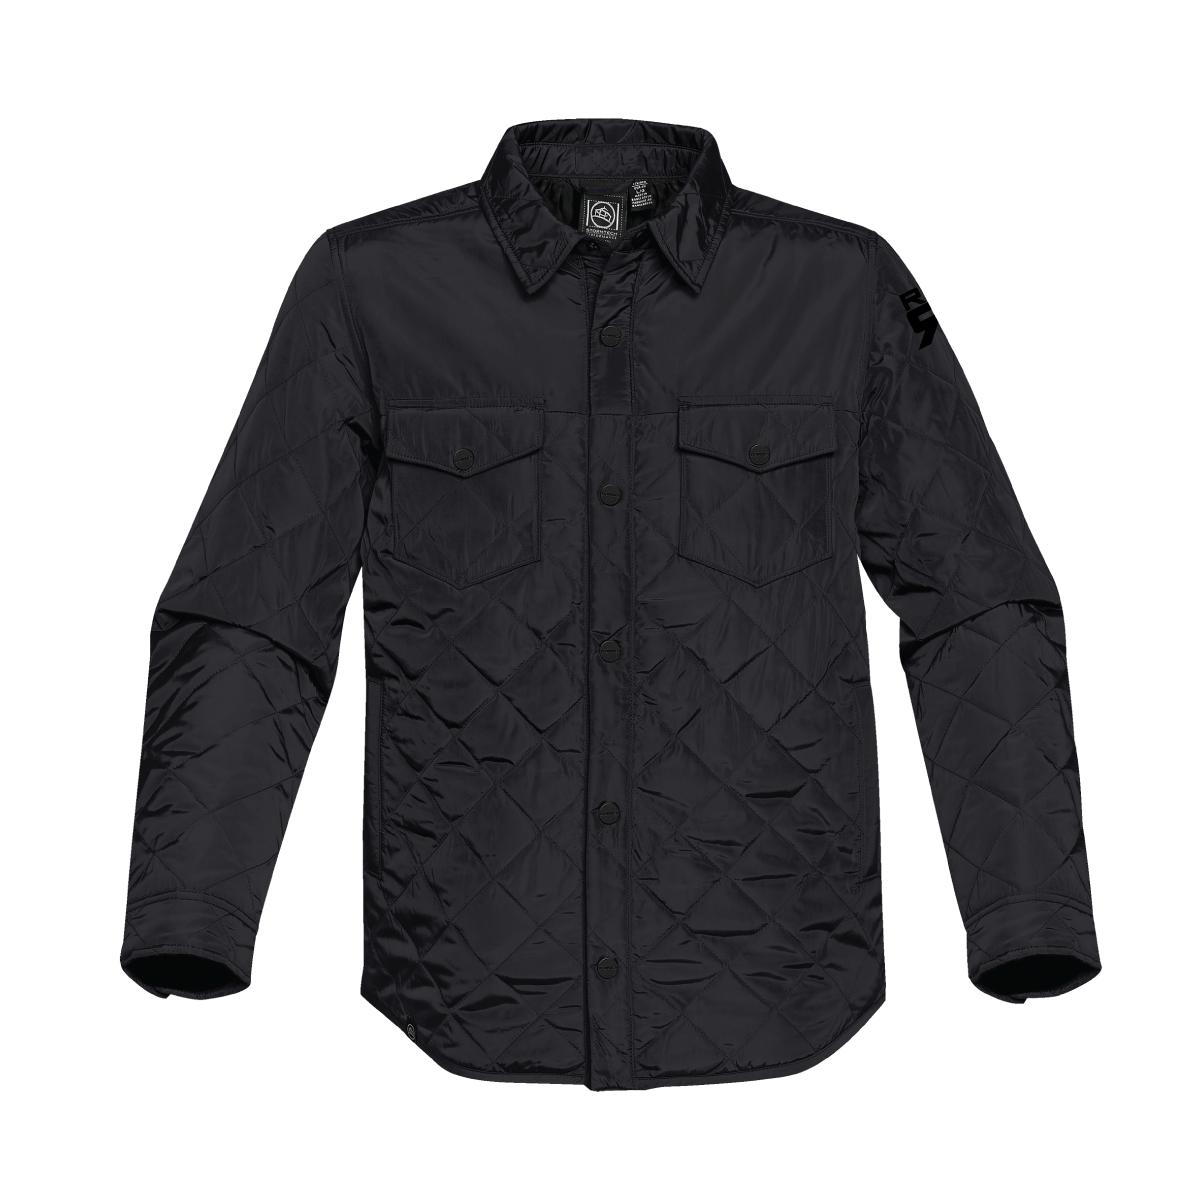 Diamond Back Boathouse Jacket - front